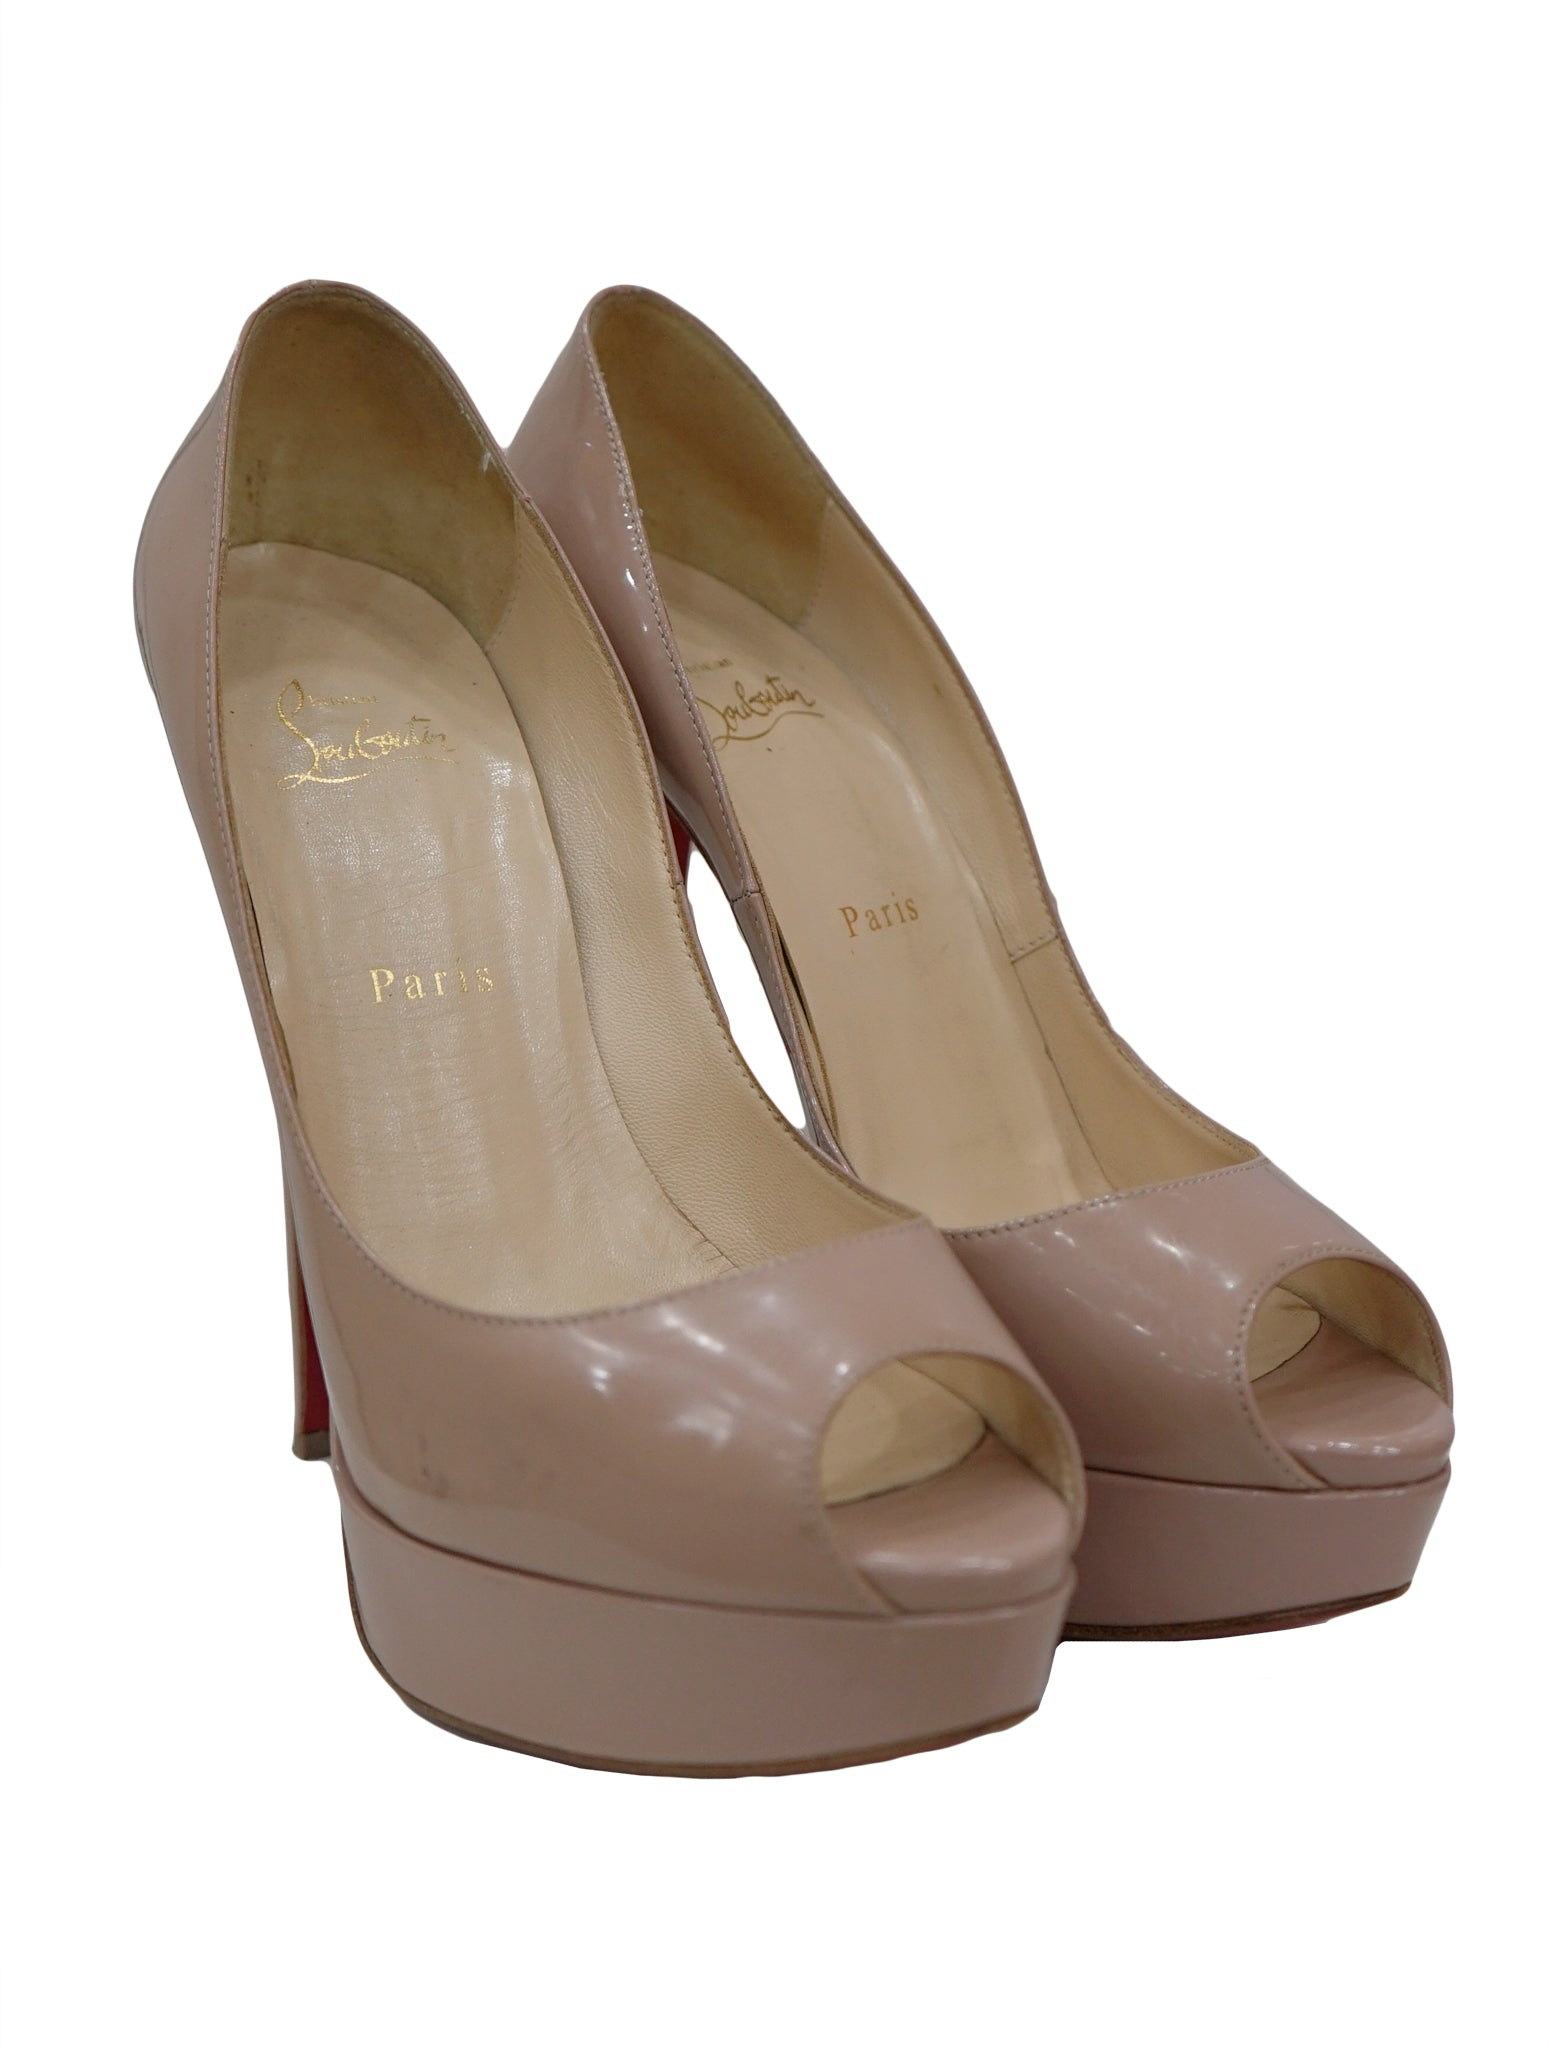 premium selection e14d3 5d07c PATENT NEW VERY PRIVE PEEP TOE